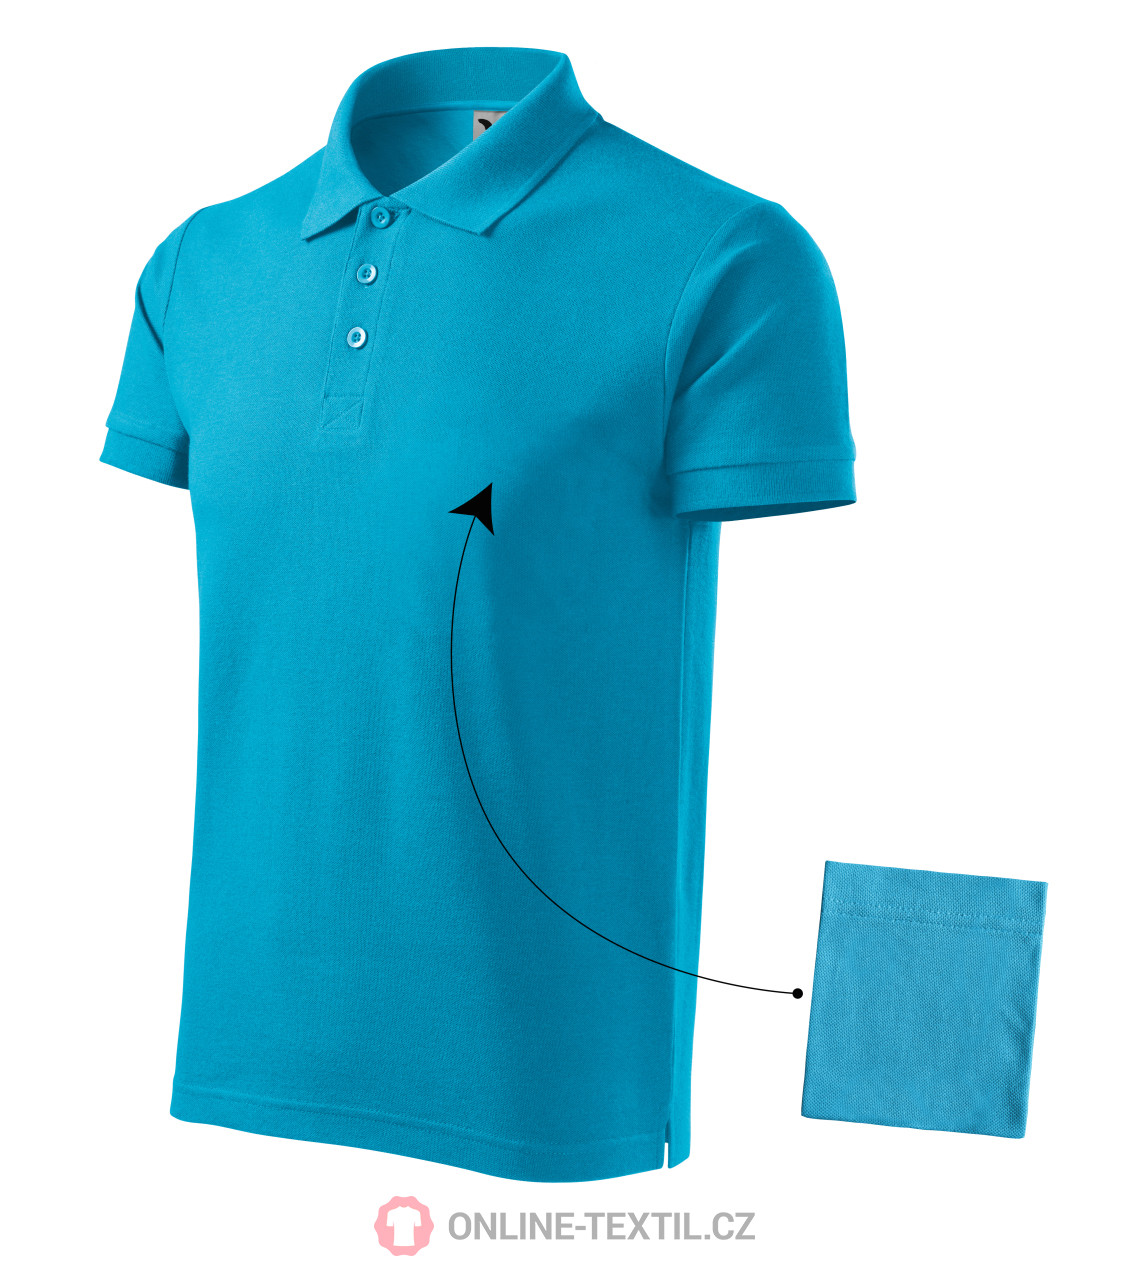 ADLER CZECH Gents Polo Shirt Cotton 212 - blue atoll from the MALFINI  collection | ONLINE-TEXTIL.COM